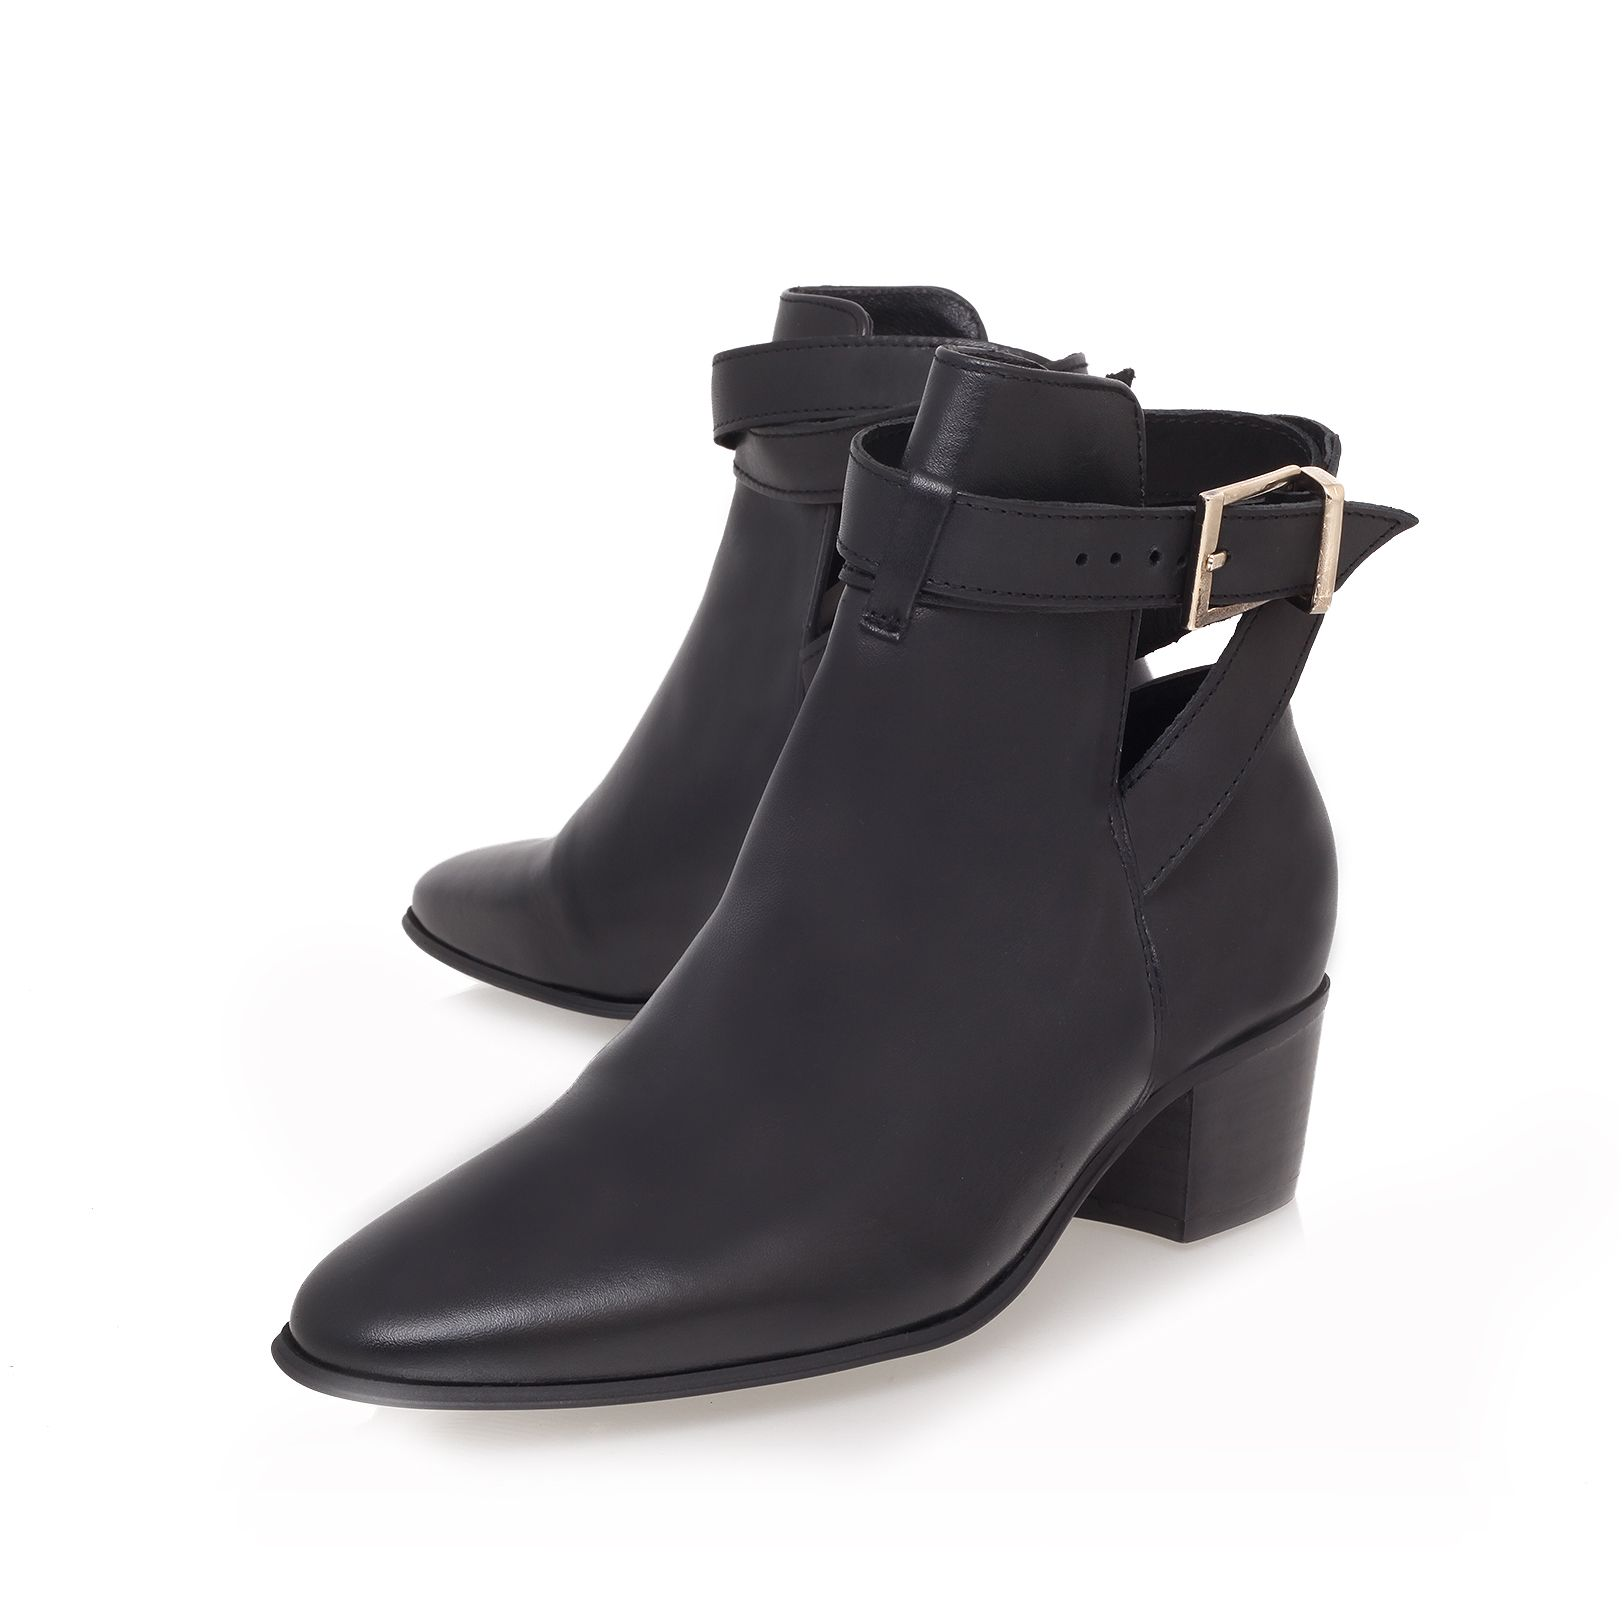 Saint mid heeled ankle boot